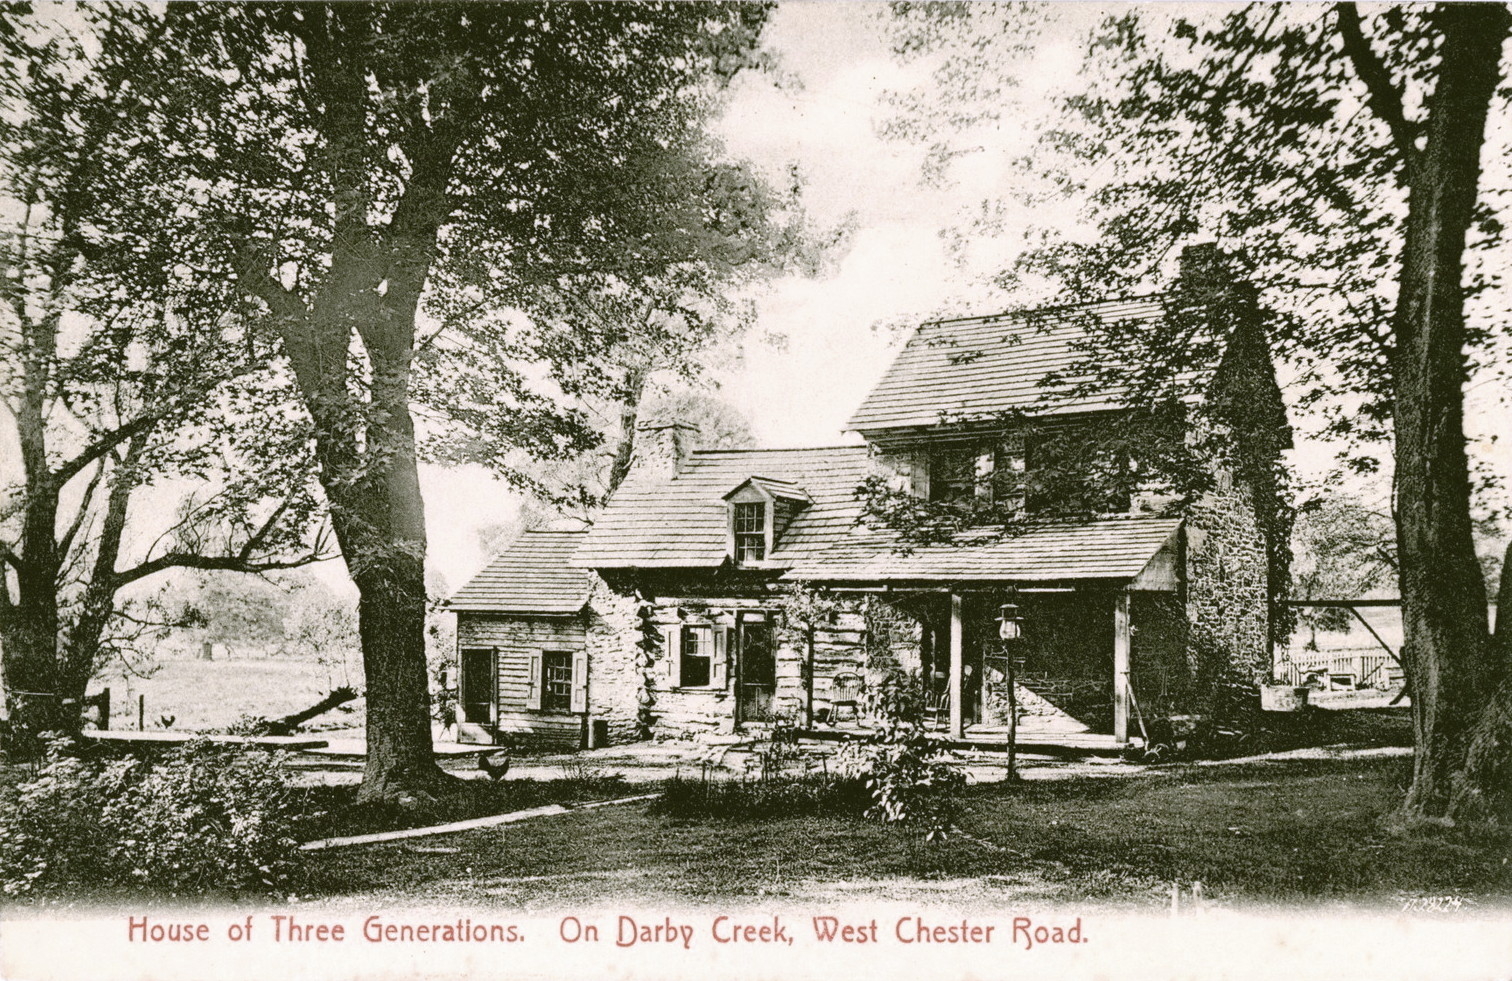 West Chester, PA - House of Three Generations on Darby Creek f